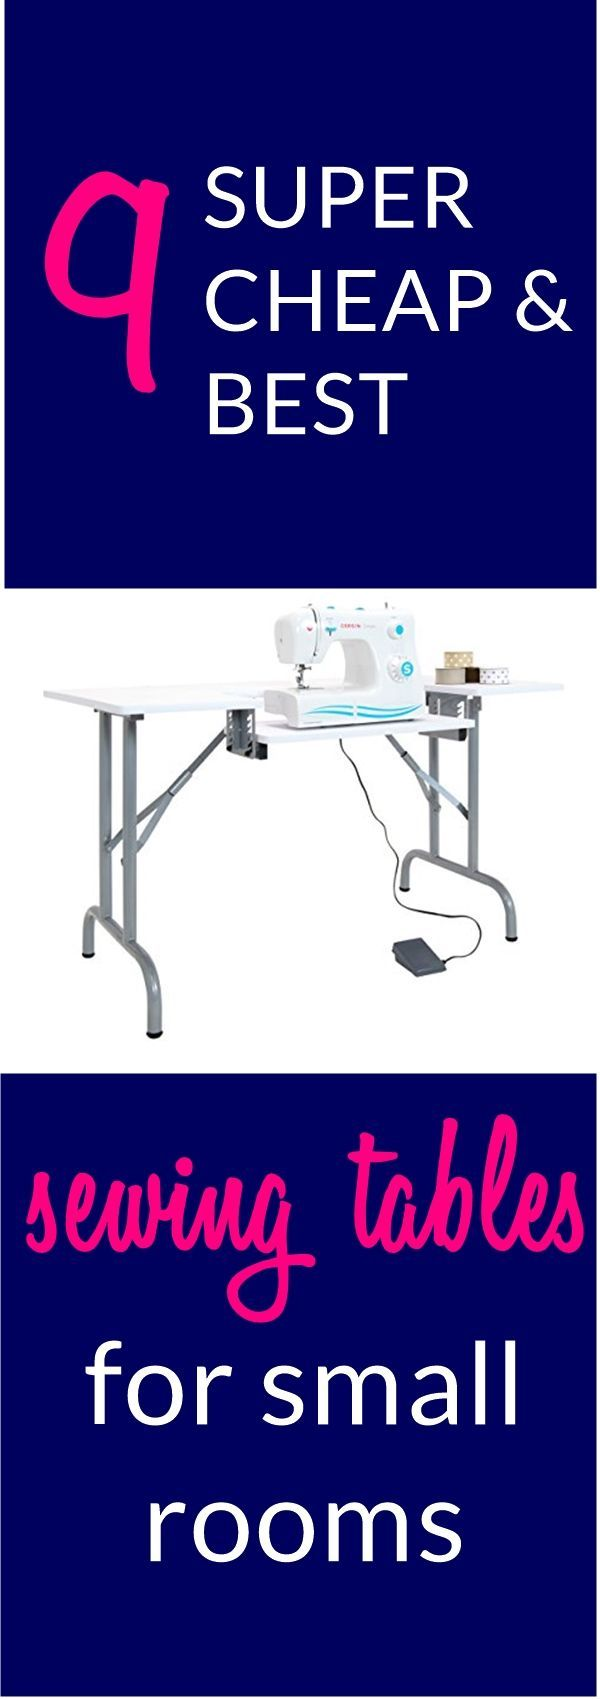 sewing cutting table   CHEAP SEWING tables   sewing machine tables   sewing tables  